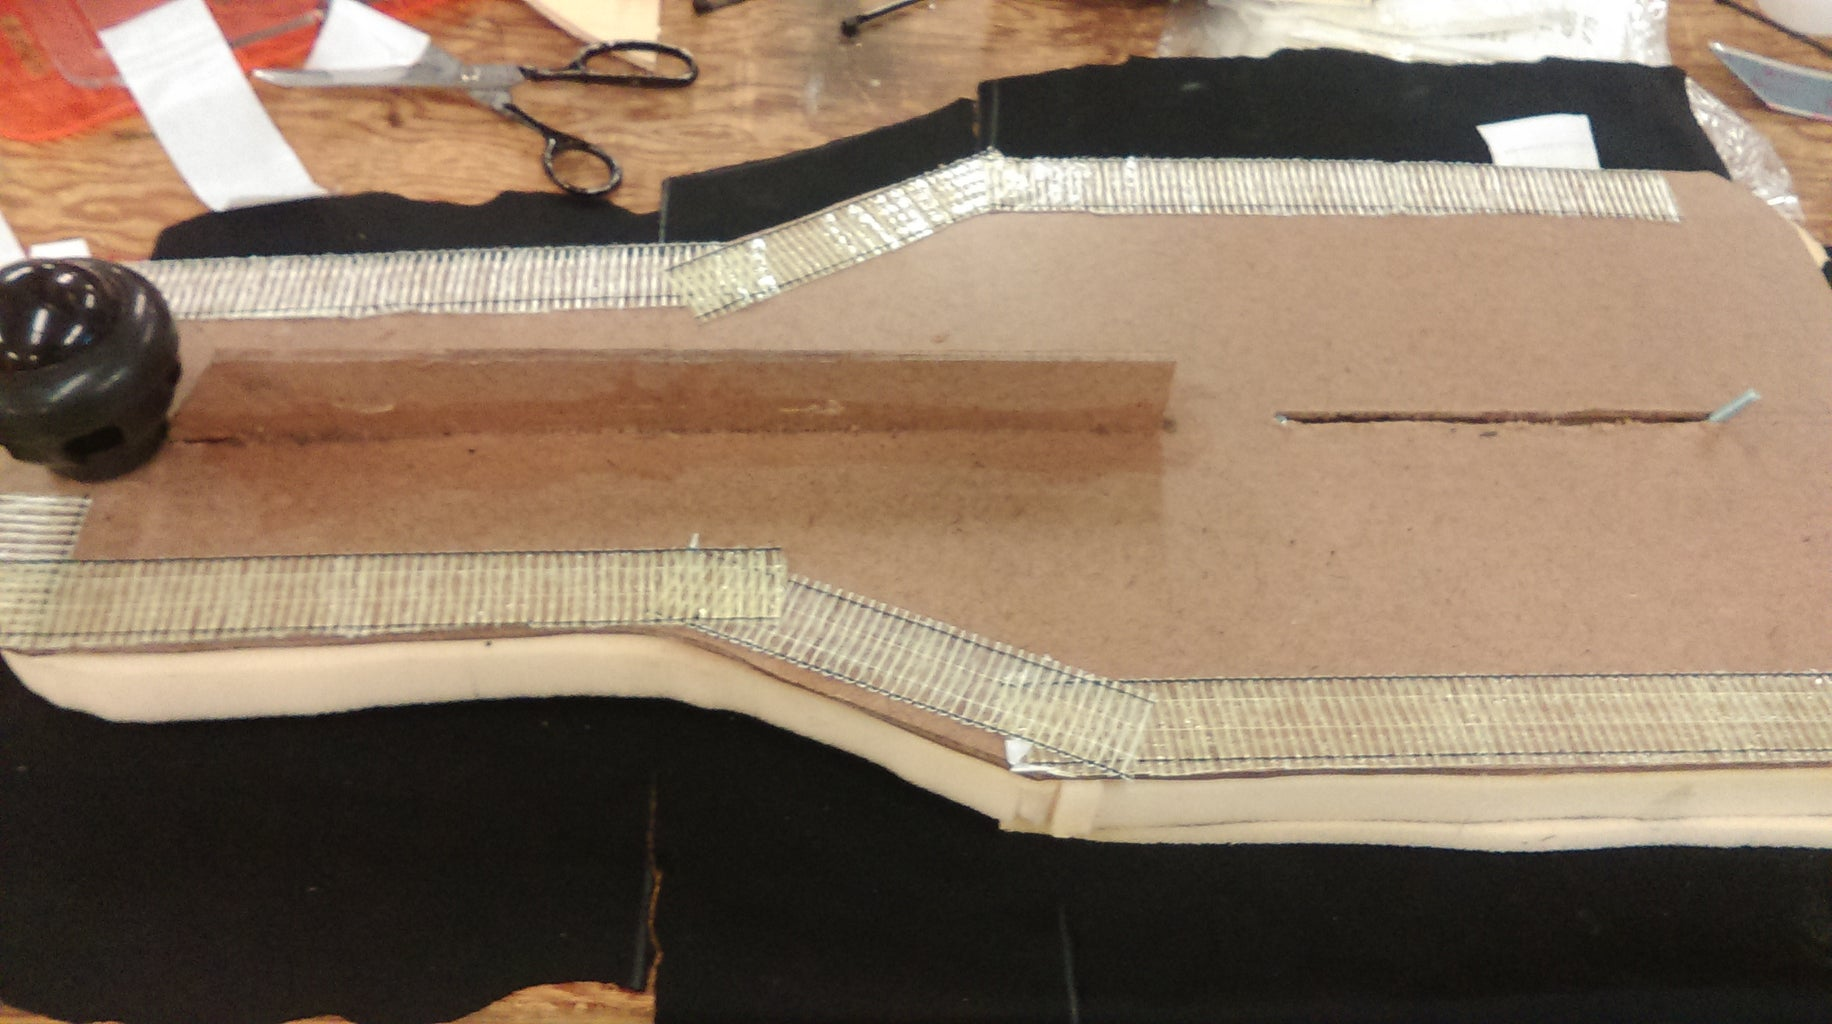 Upholstering the Board